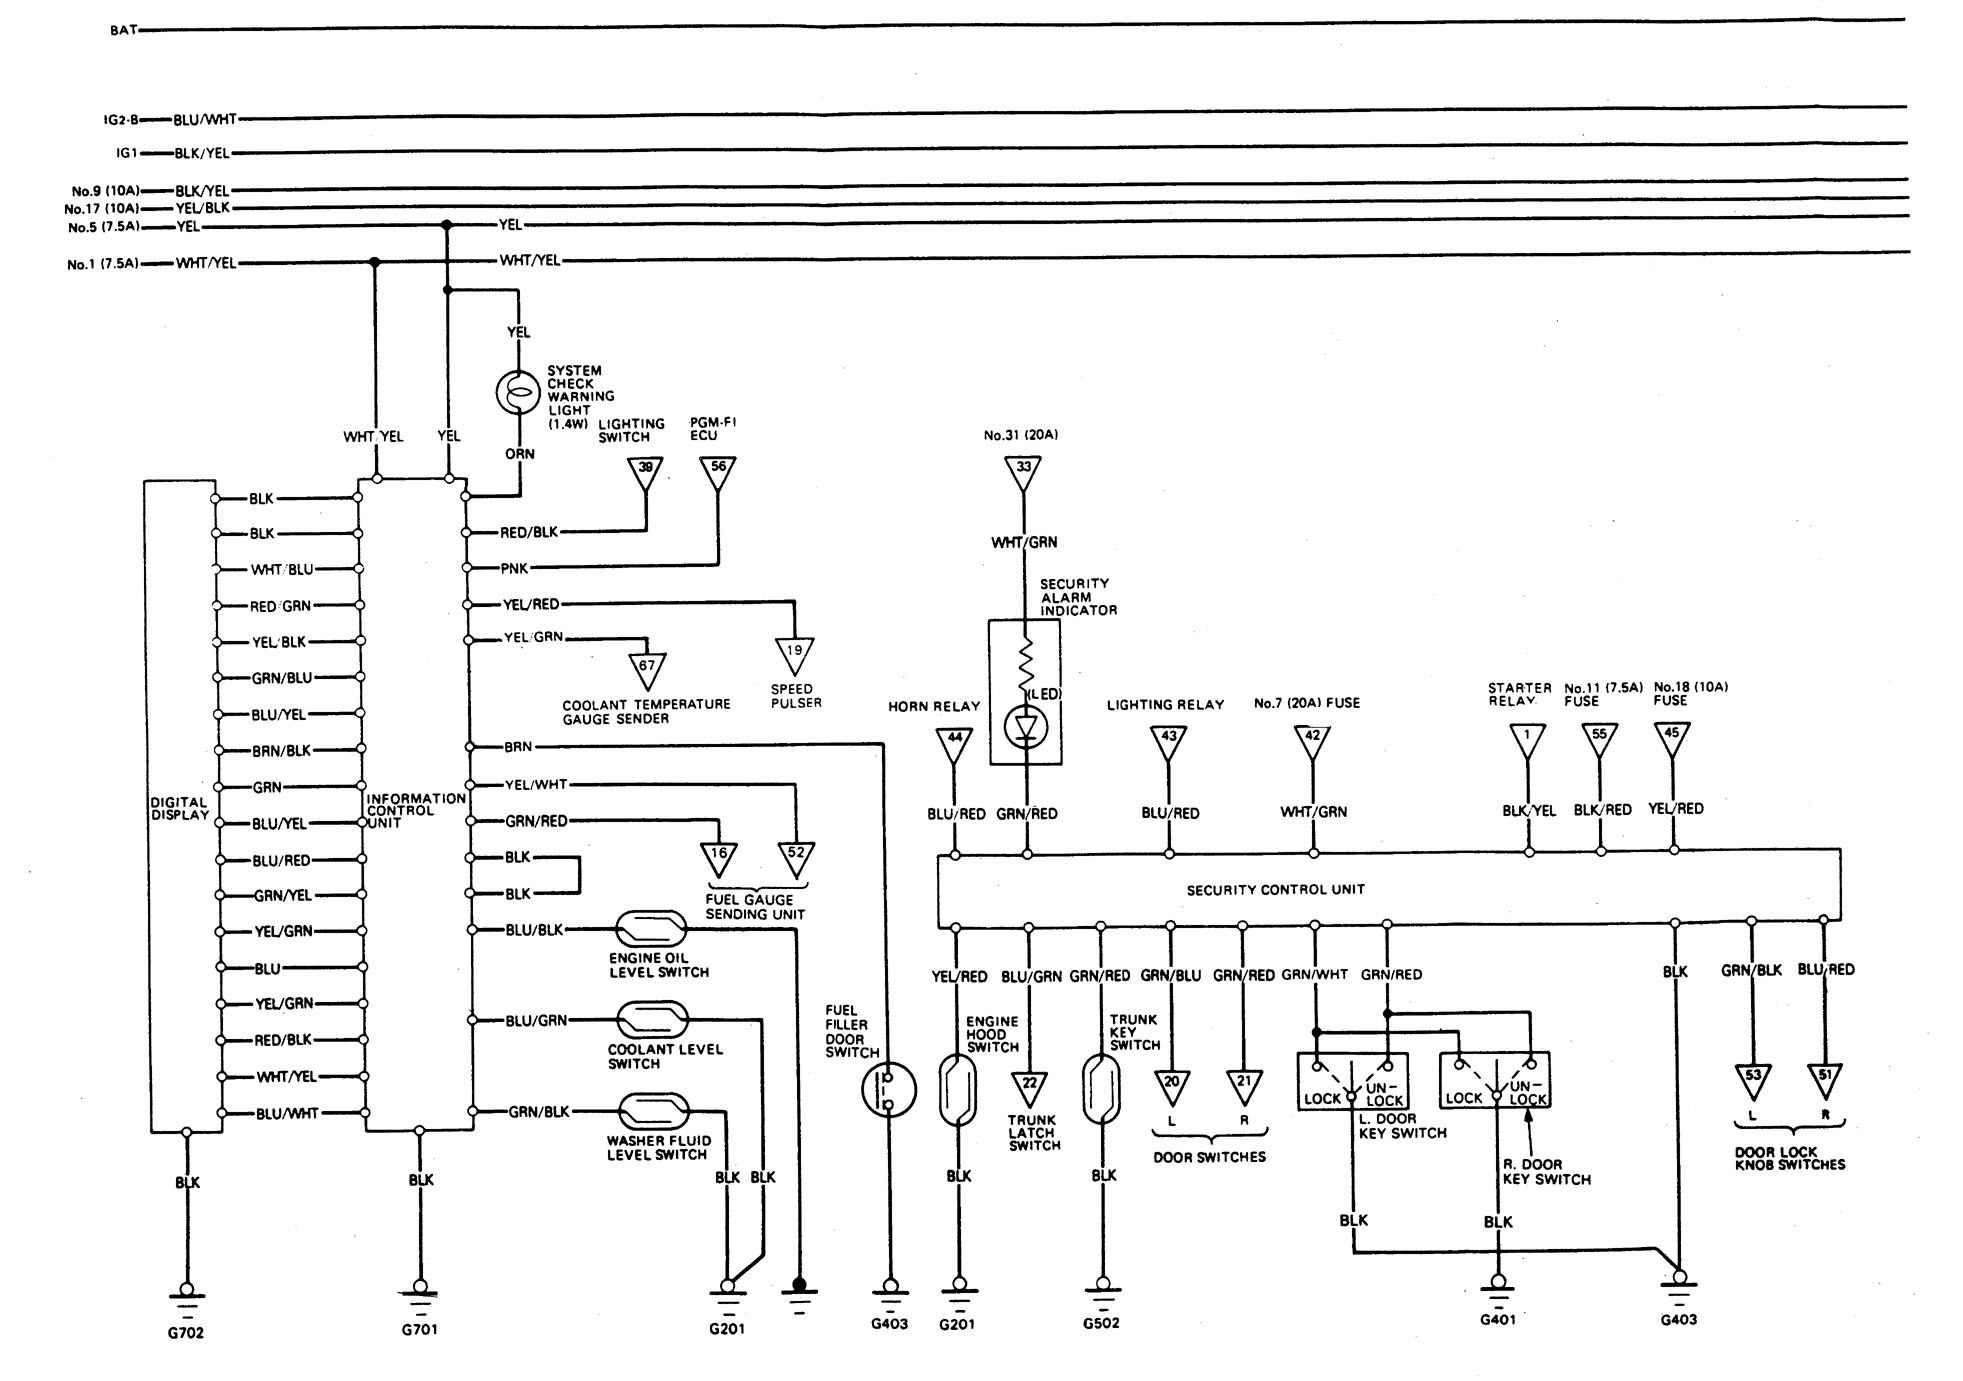 [DIAGRAM_3NM]  Acura Legend (1989) - wiring system - security/anti-theft -  Carknowledge.info | 1989 Acura Legend Wiring Diagram |  | Carknowledge.info